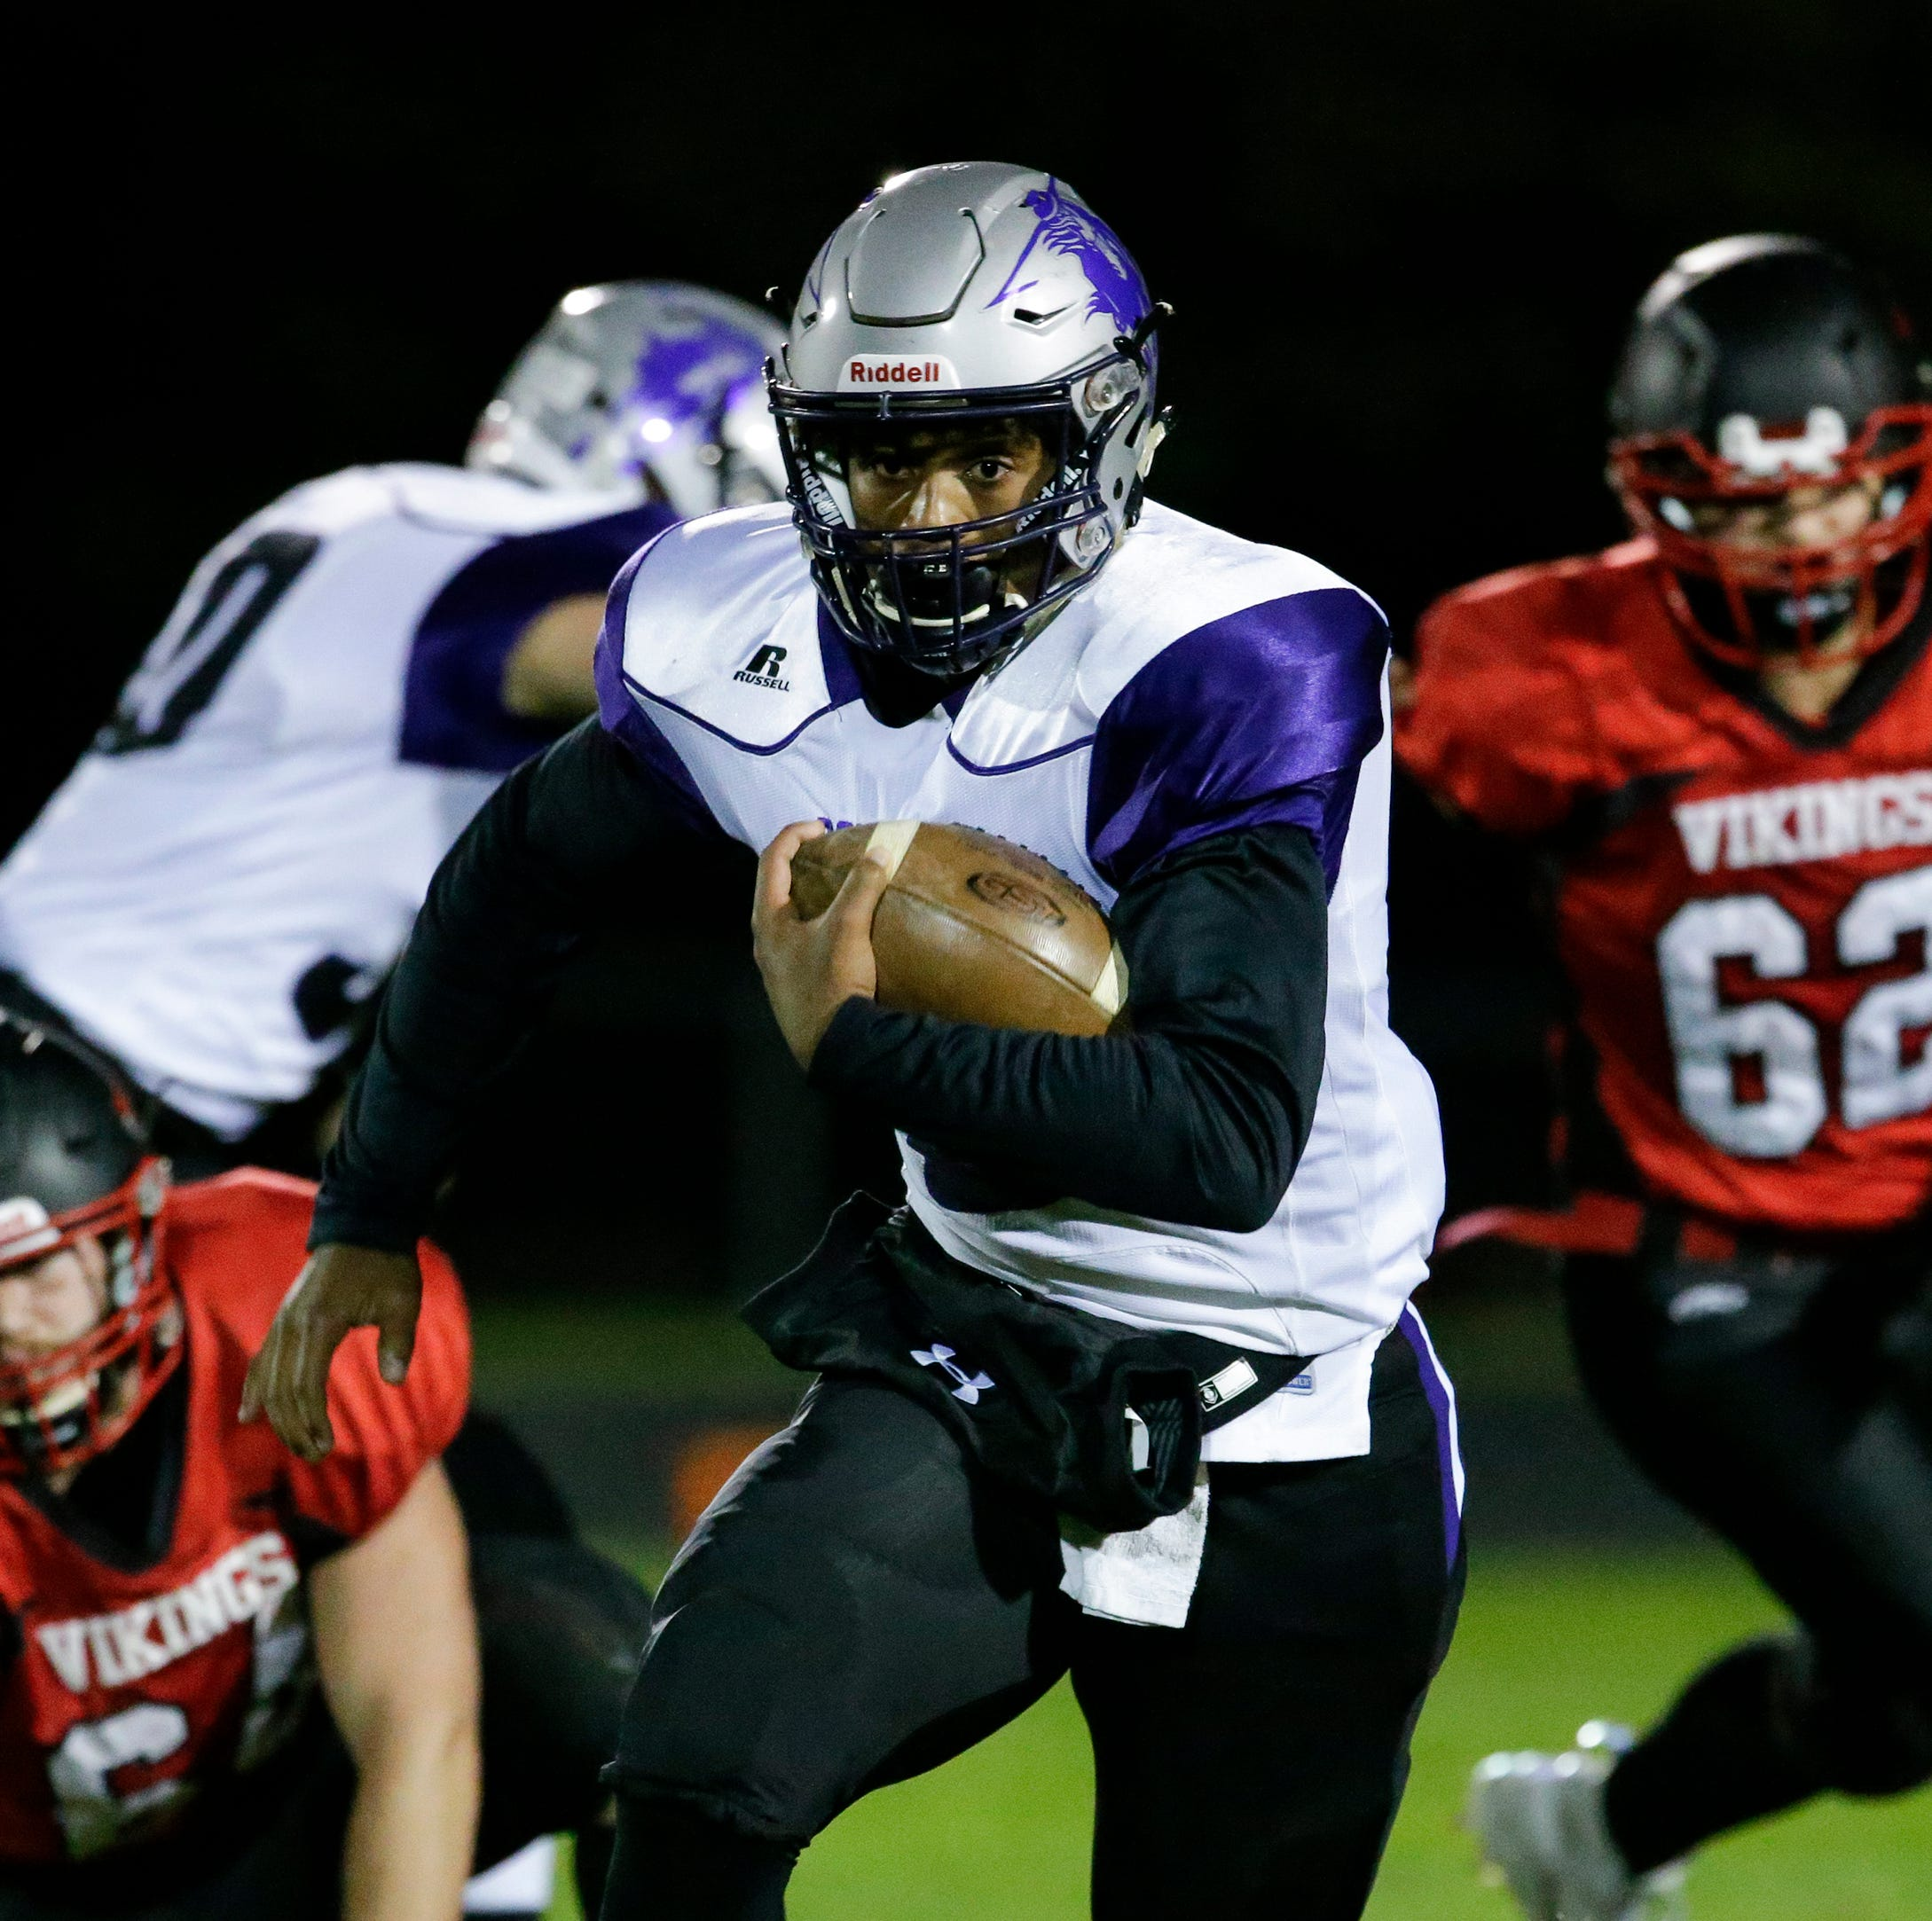 Top high school performers: Sheboygan North's Kraus rumbles for 143 yards, 3 TDs